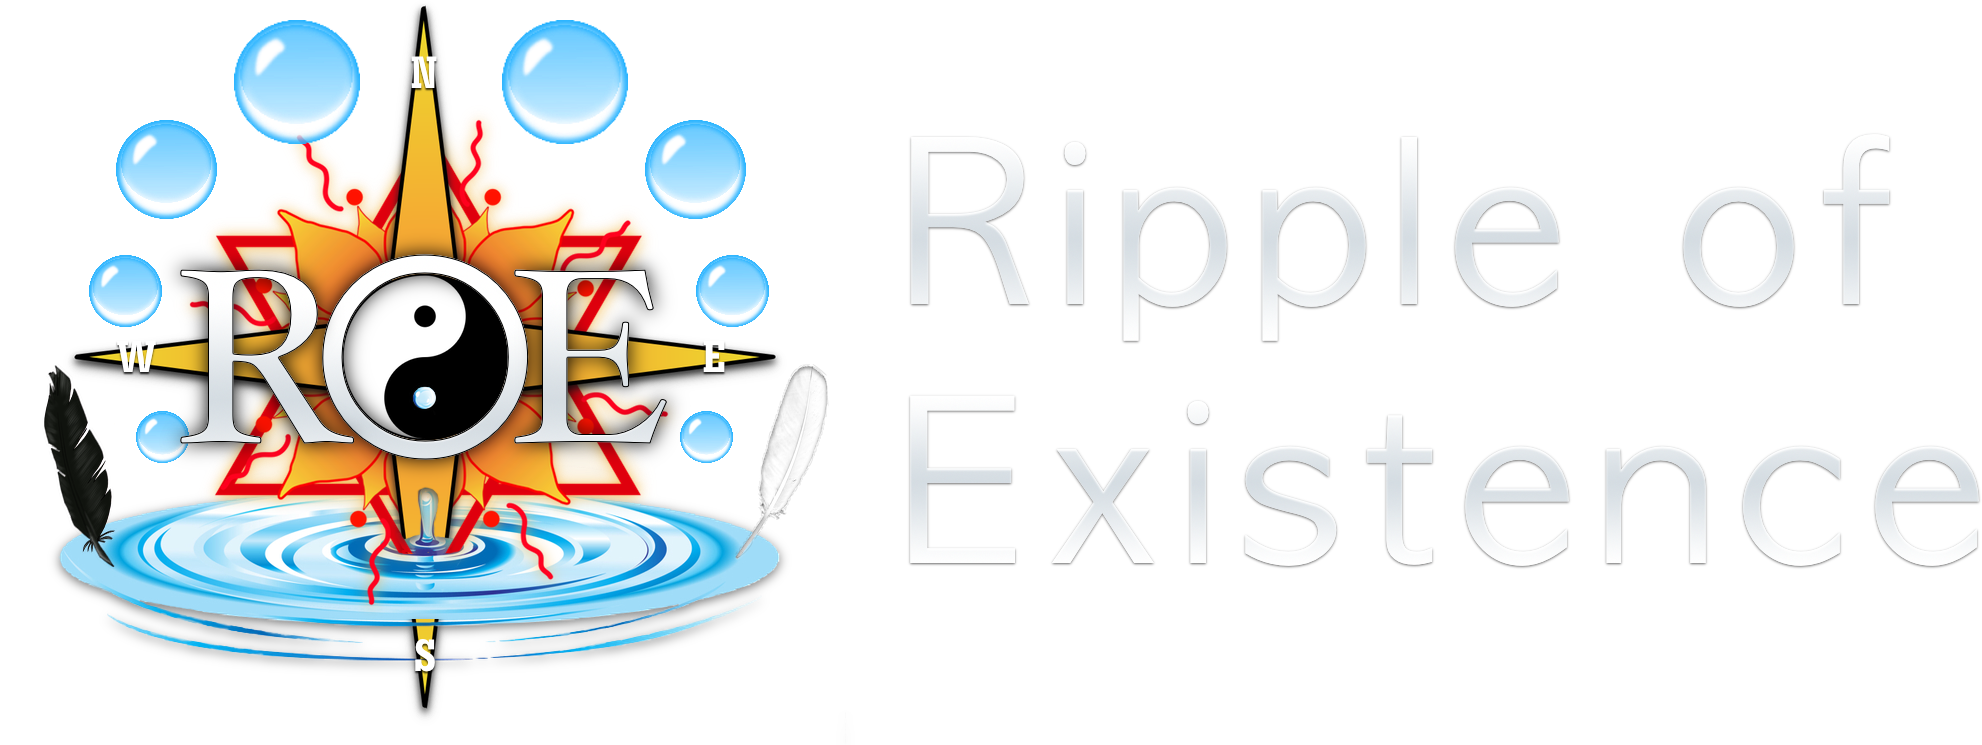 Ripple of Existence